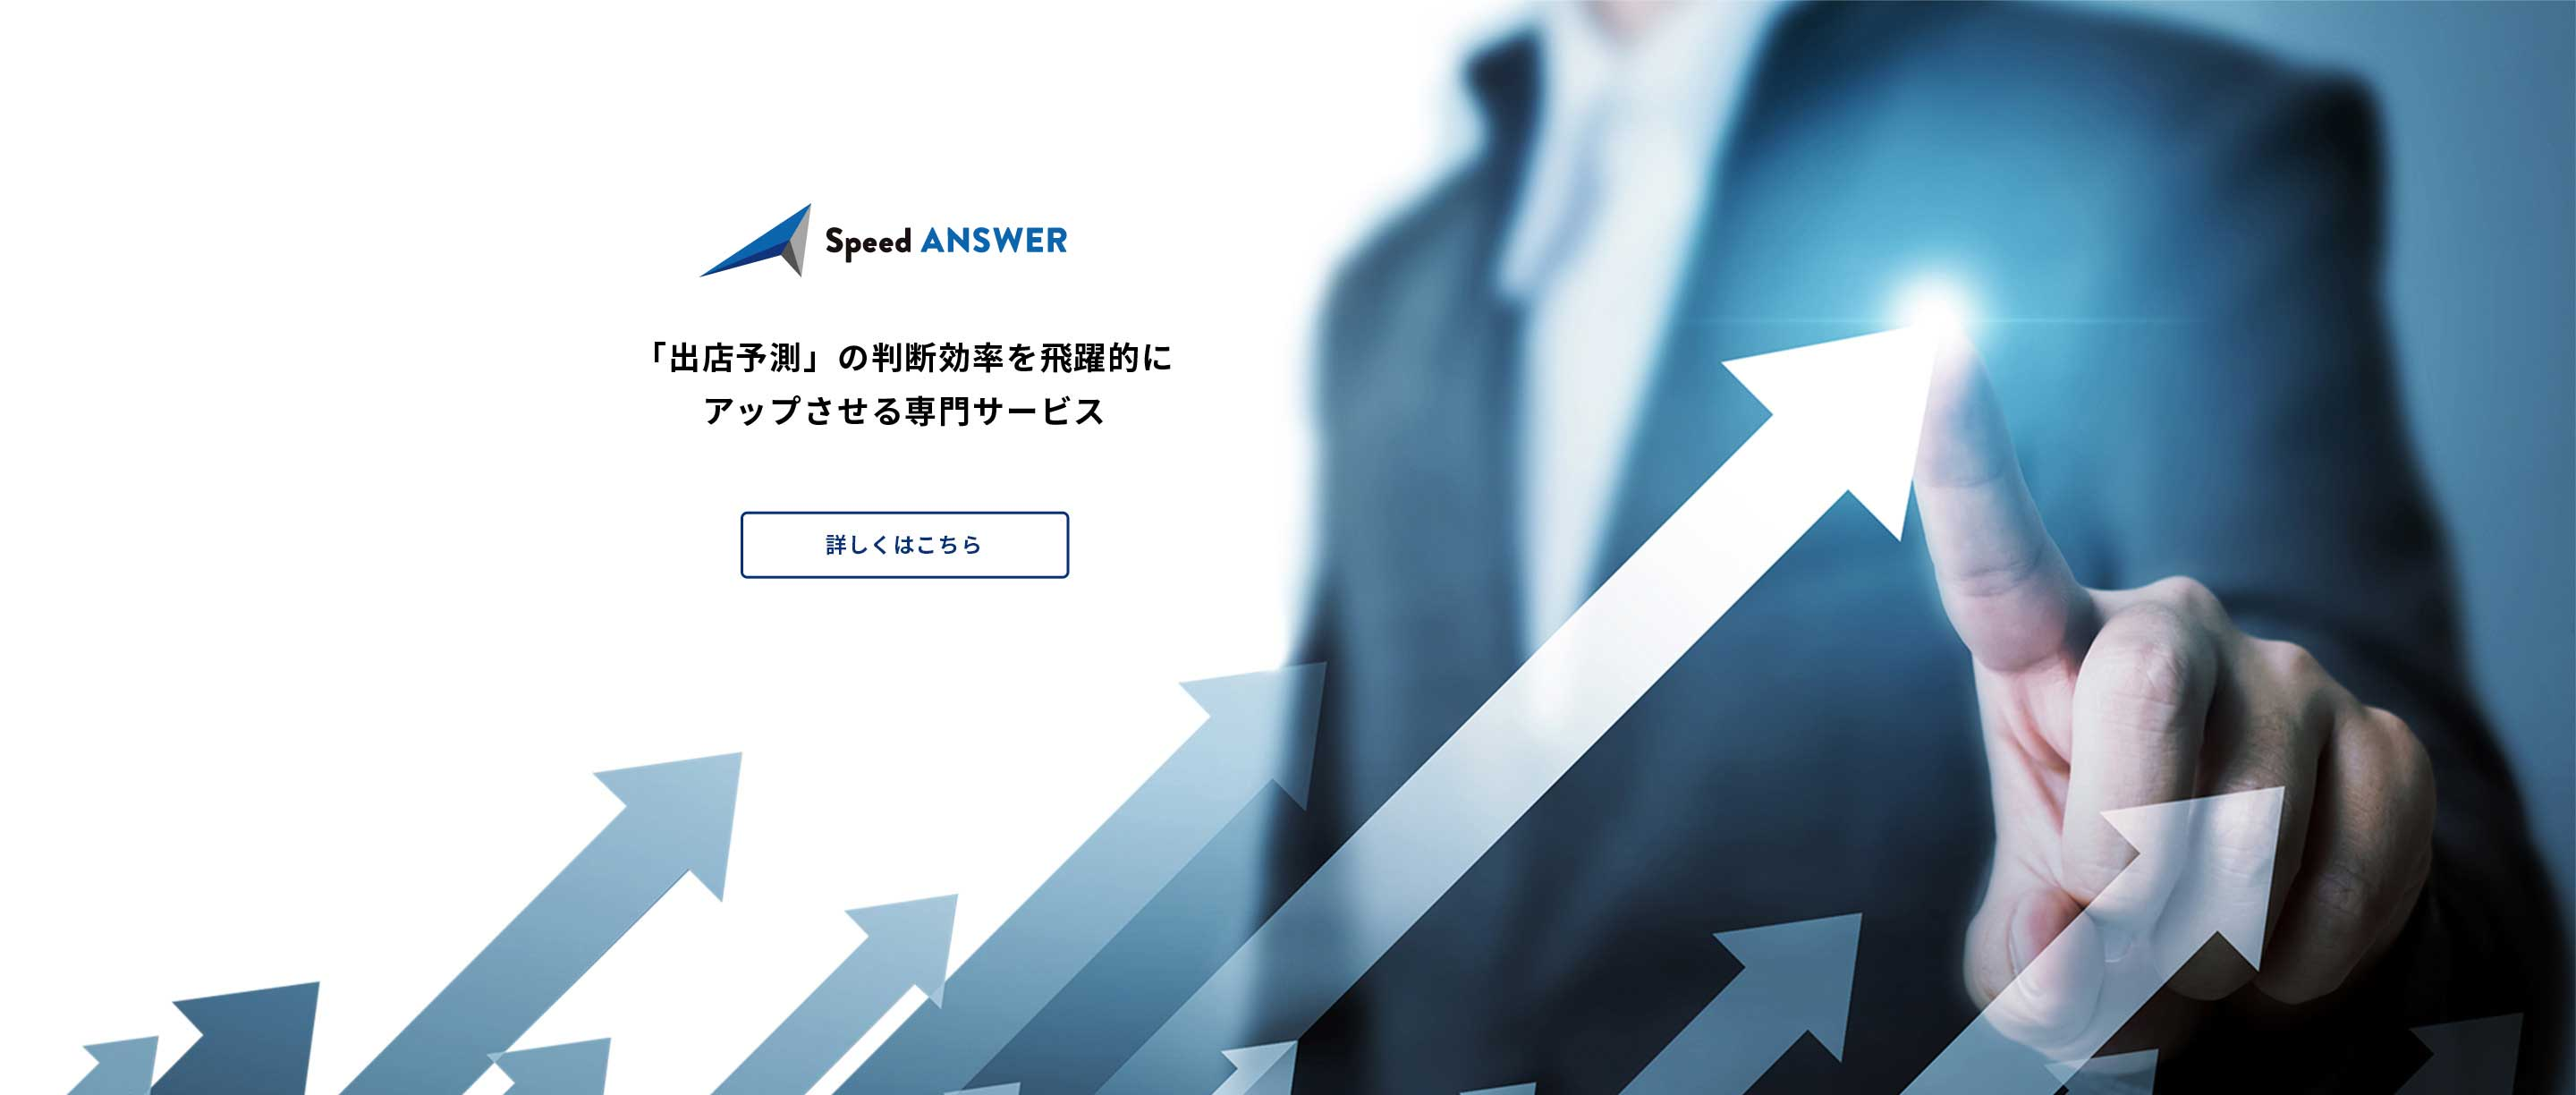 SPEED ANSWER